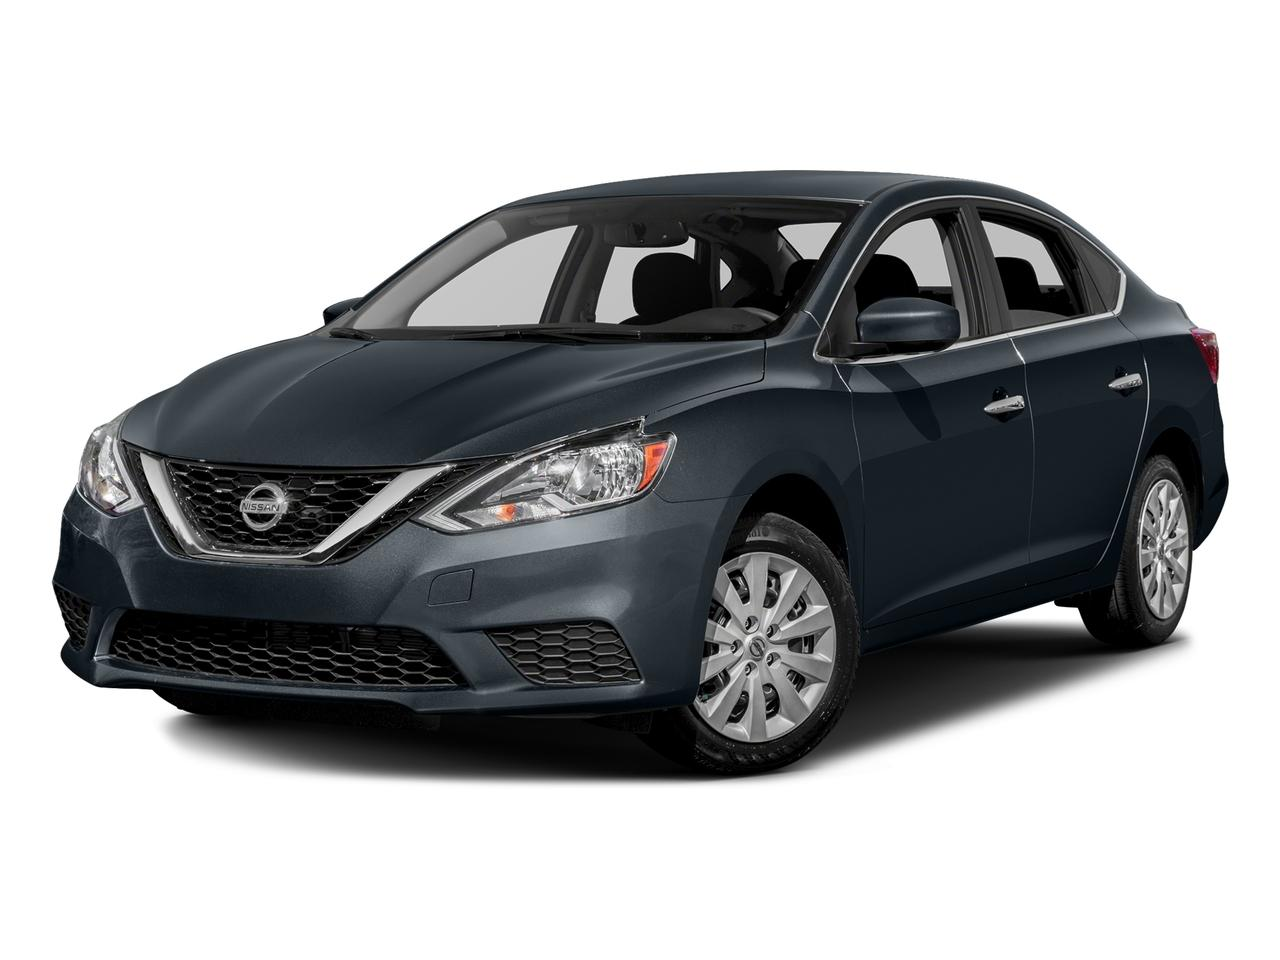 2017 Nissan Sentra Vehicle Photo in TEMPLE, TX 76504-3447